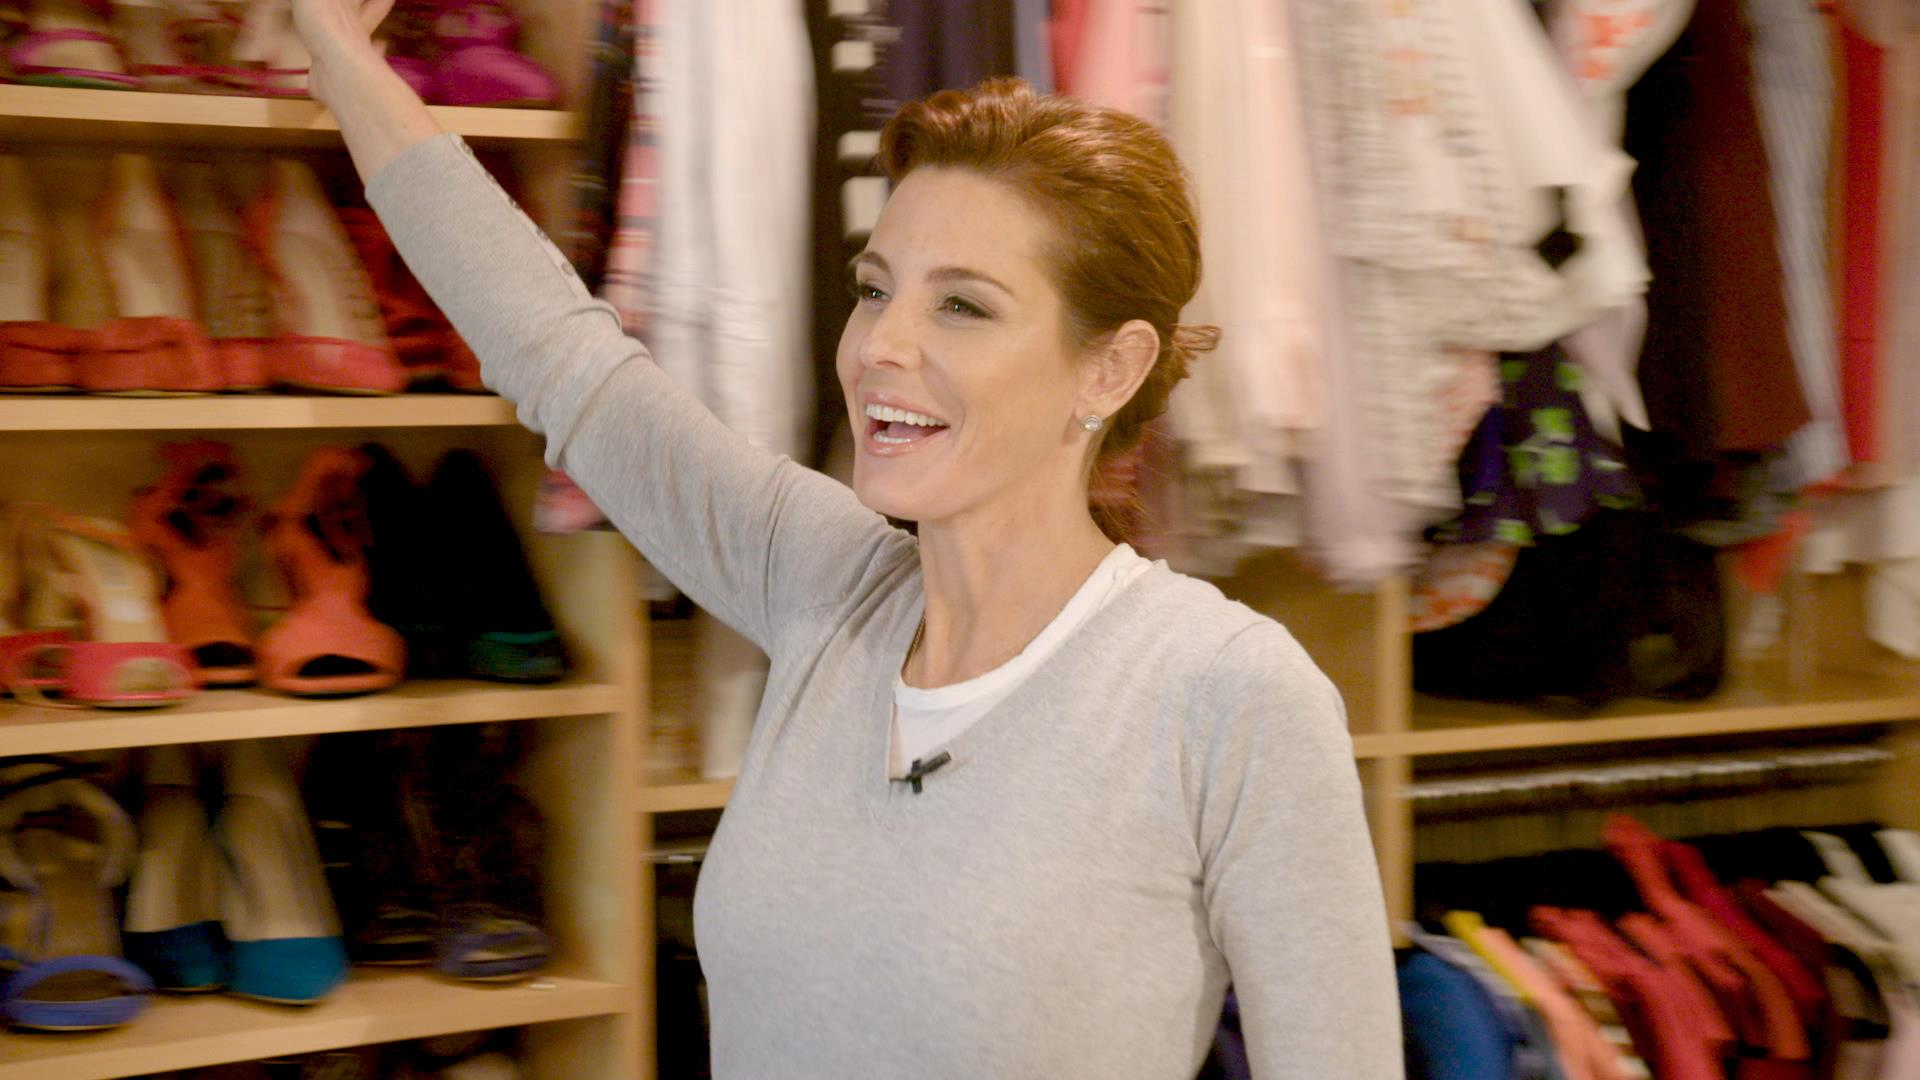 How To Organize Your Closet The Best Way With Stephanie Ruhle